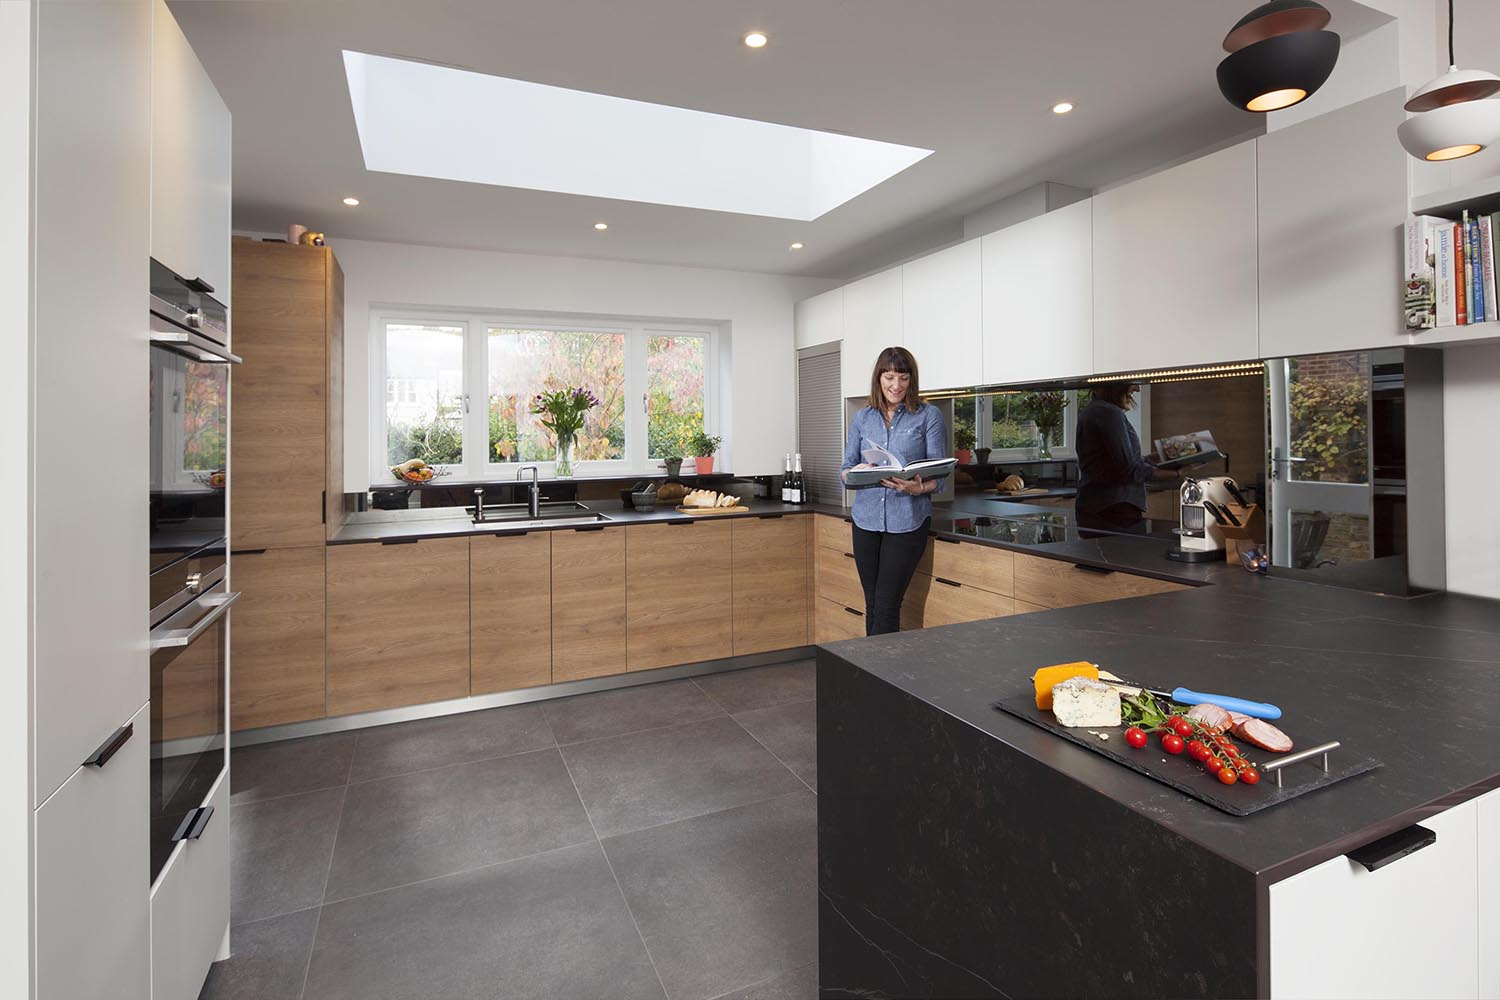 Interior design photographers in Cornwall